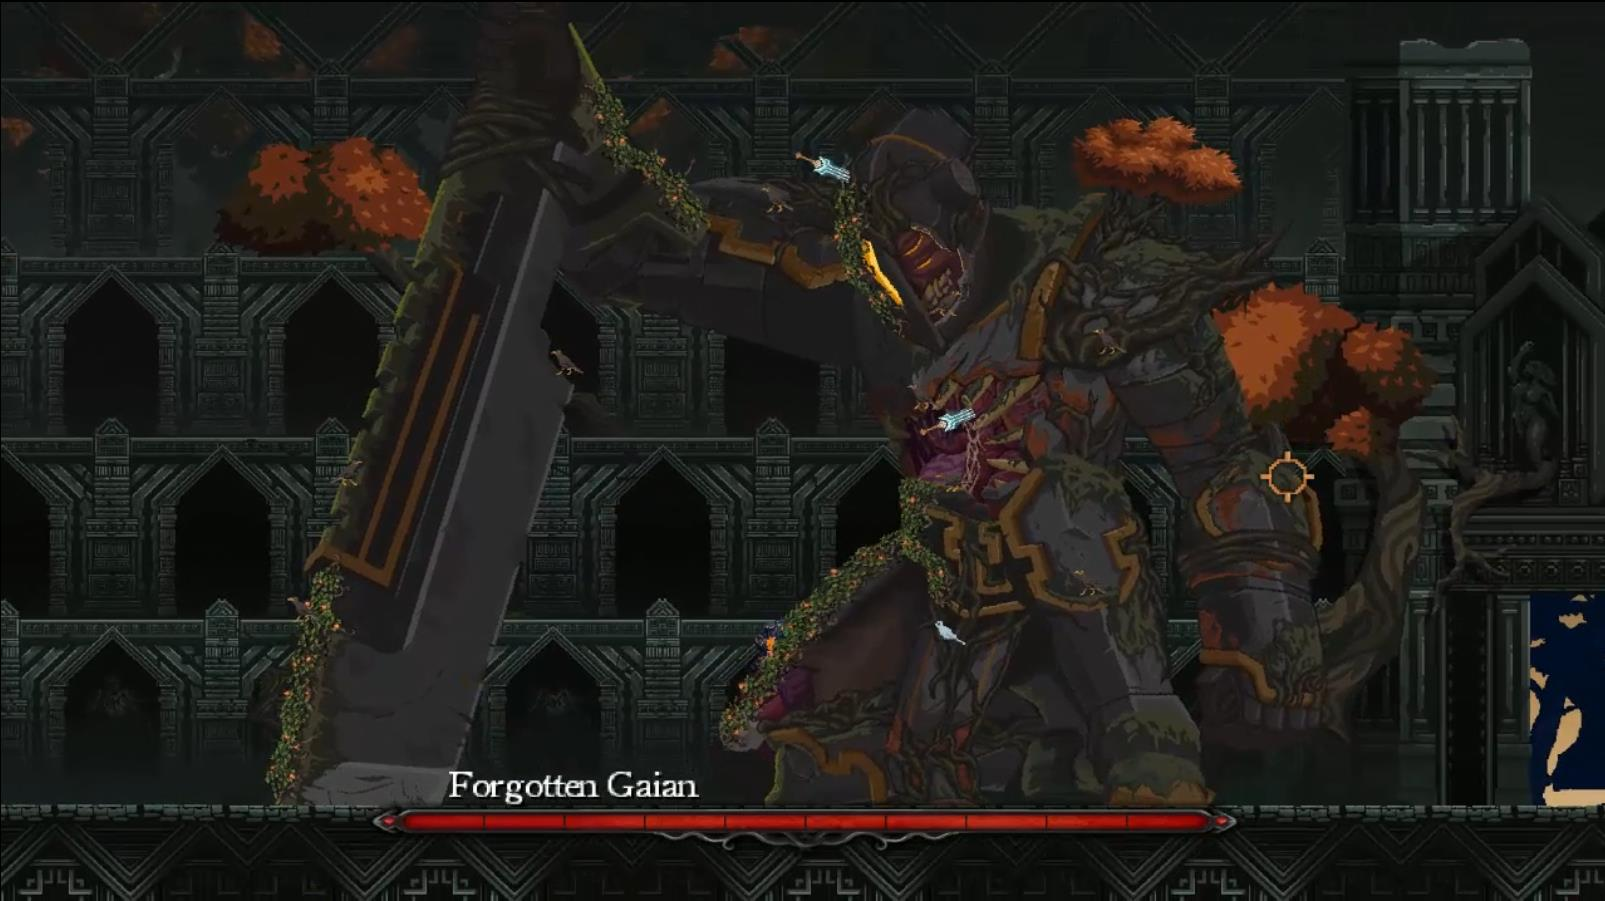 Deaths Gambit Shows Off Its Immortal Bosses VG247